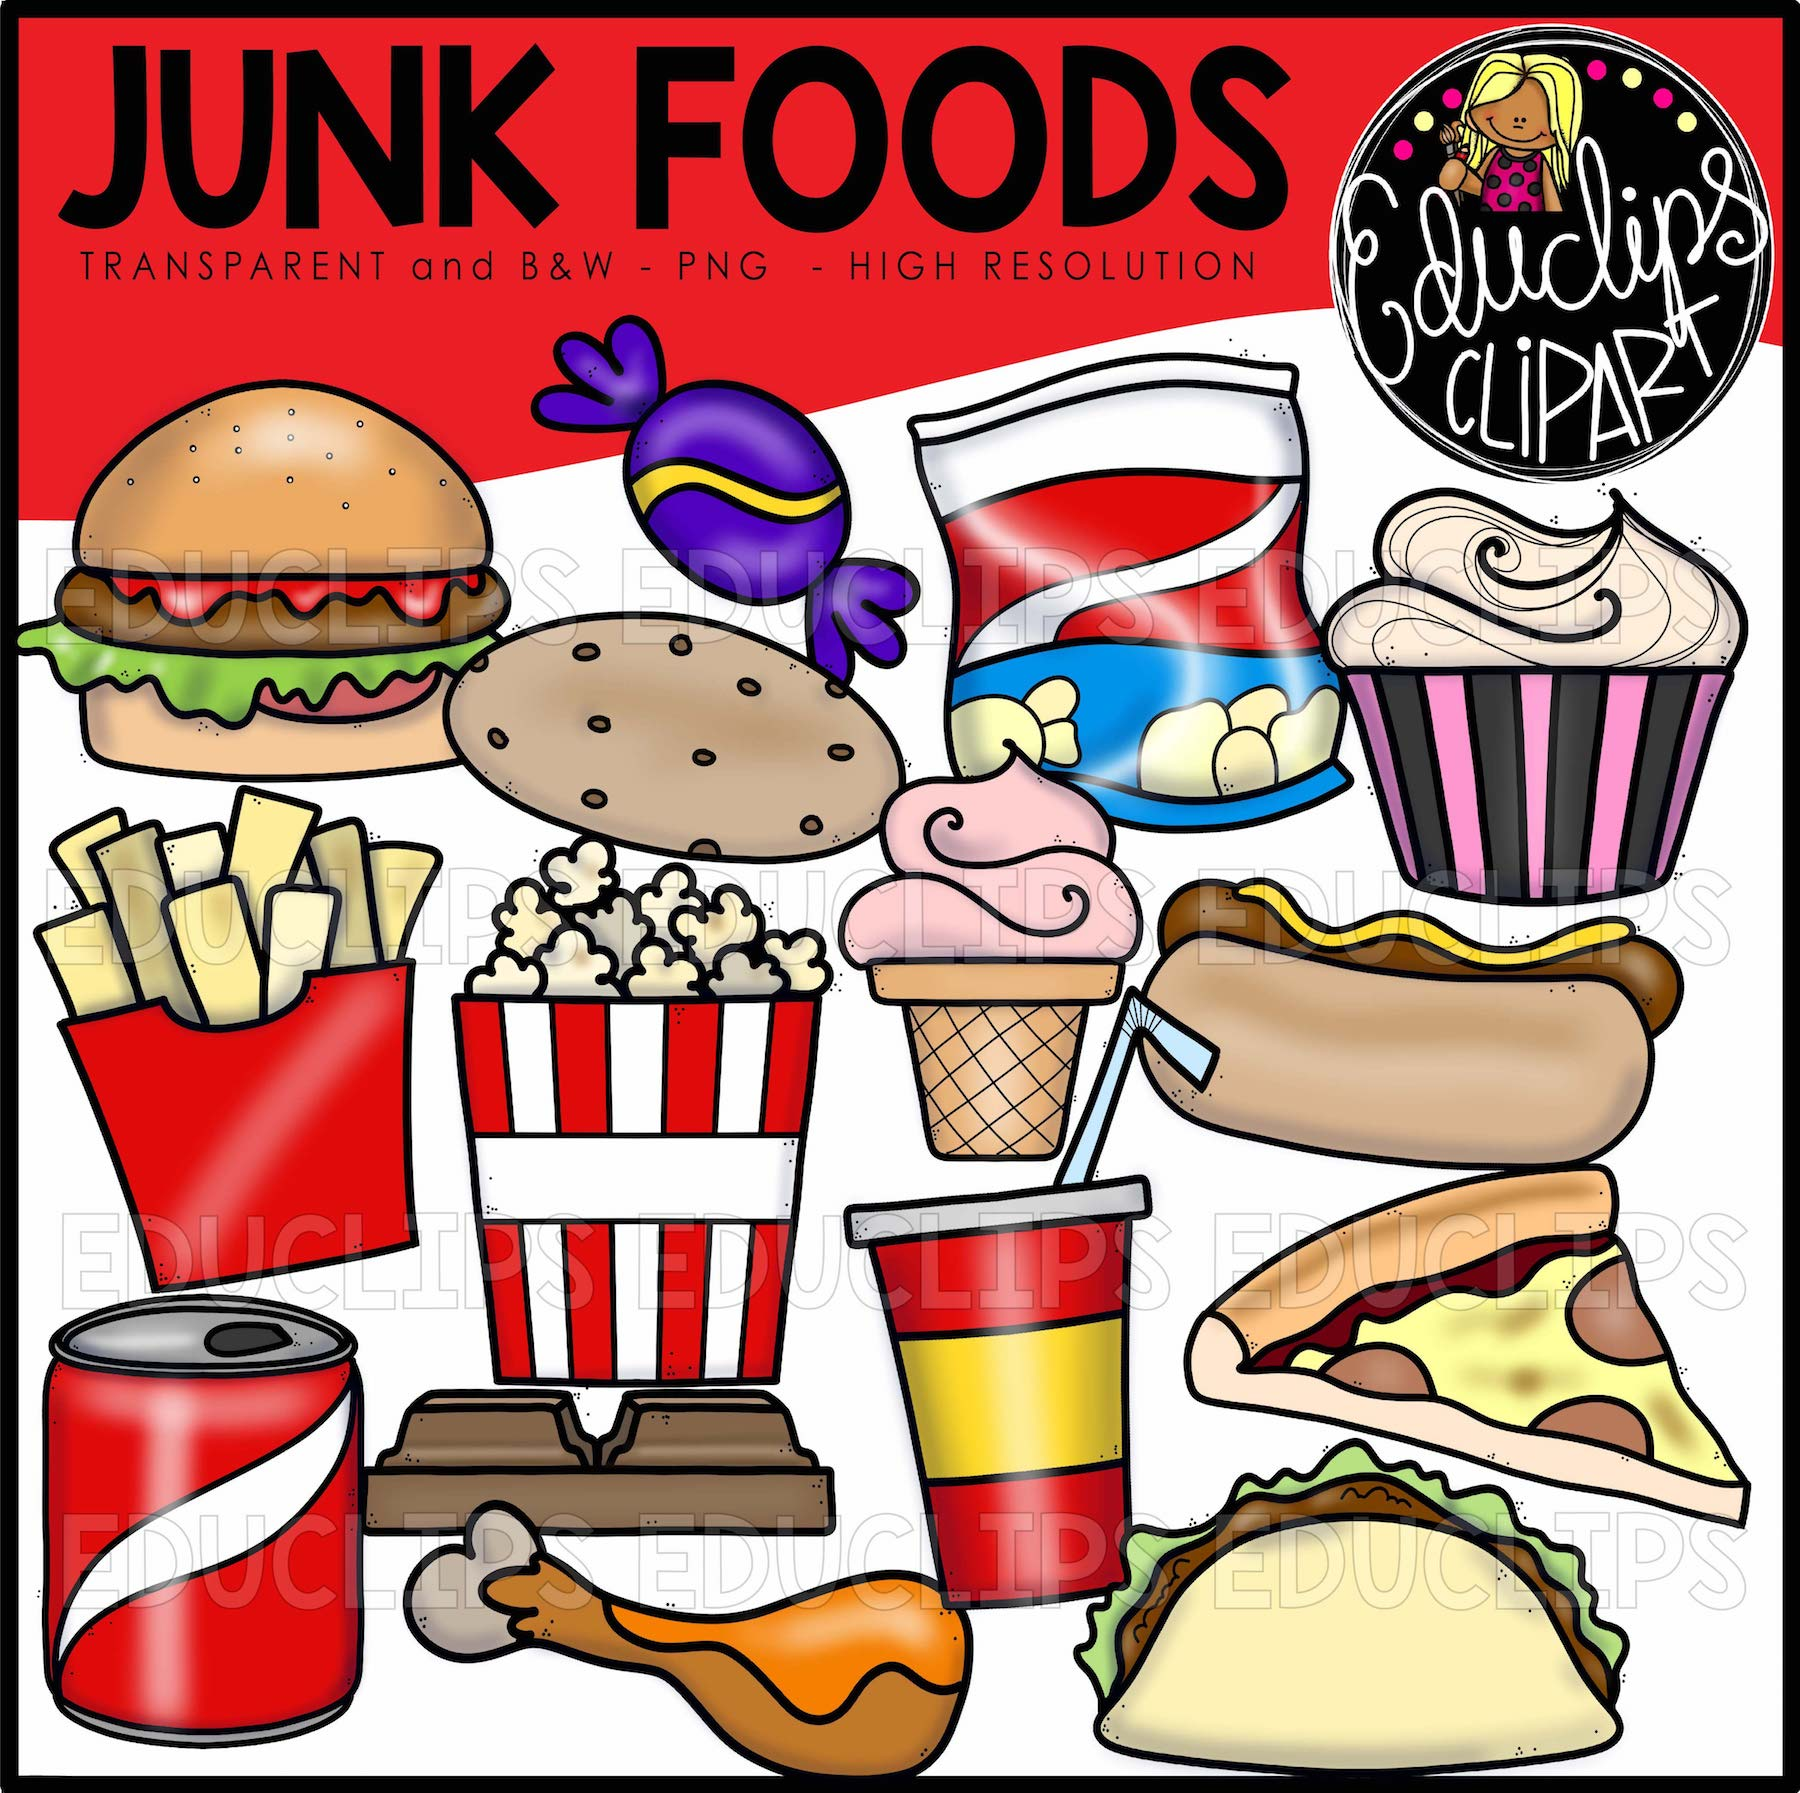 junk foods clip art bundle color and b w welcome to educlips store